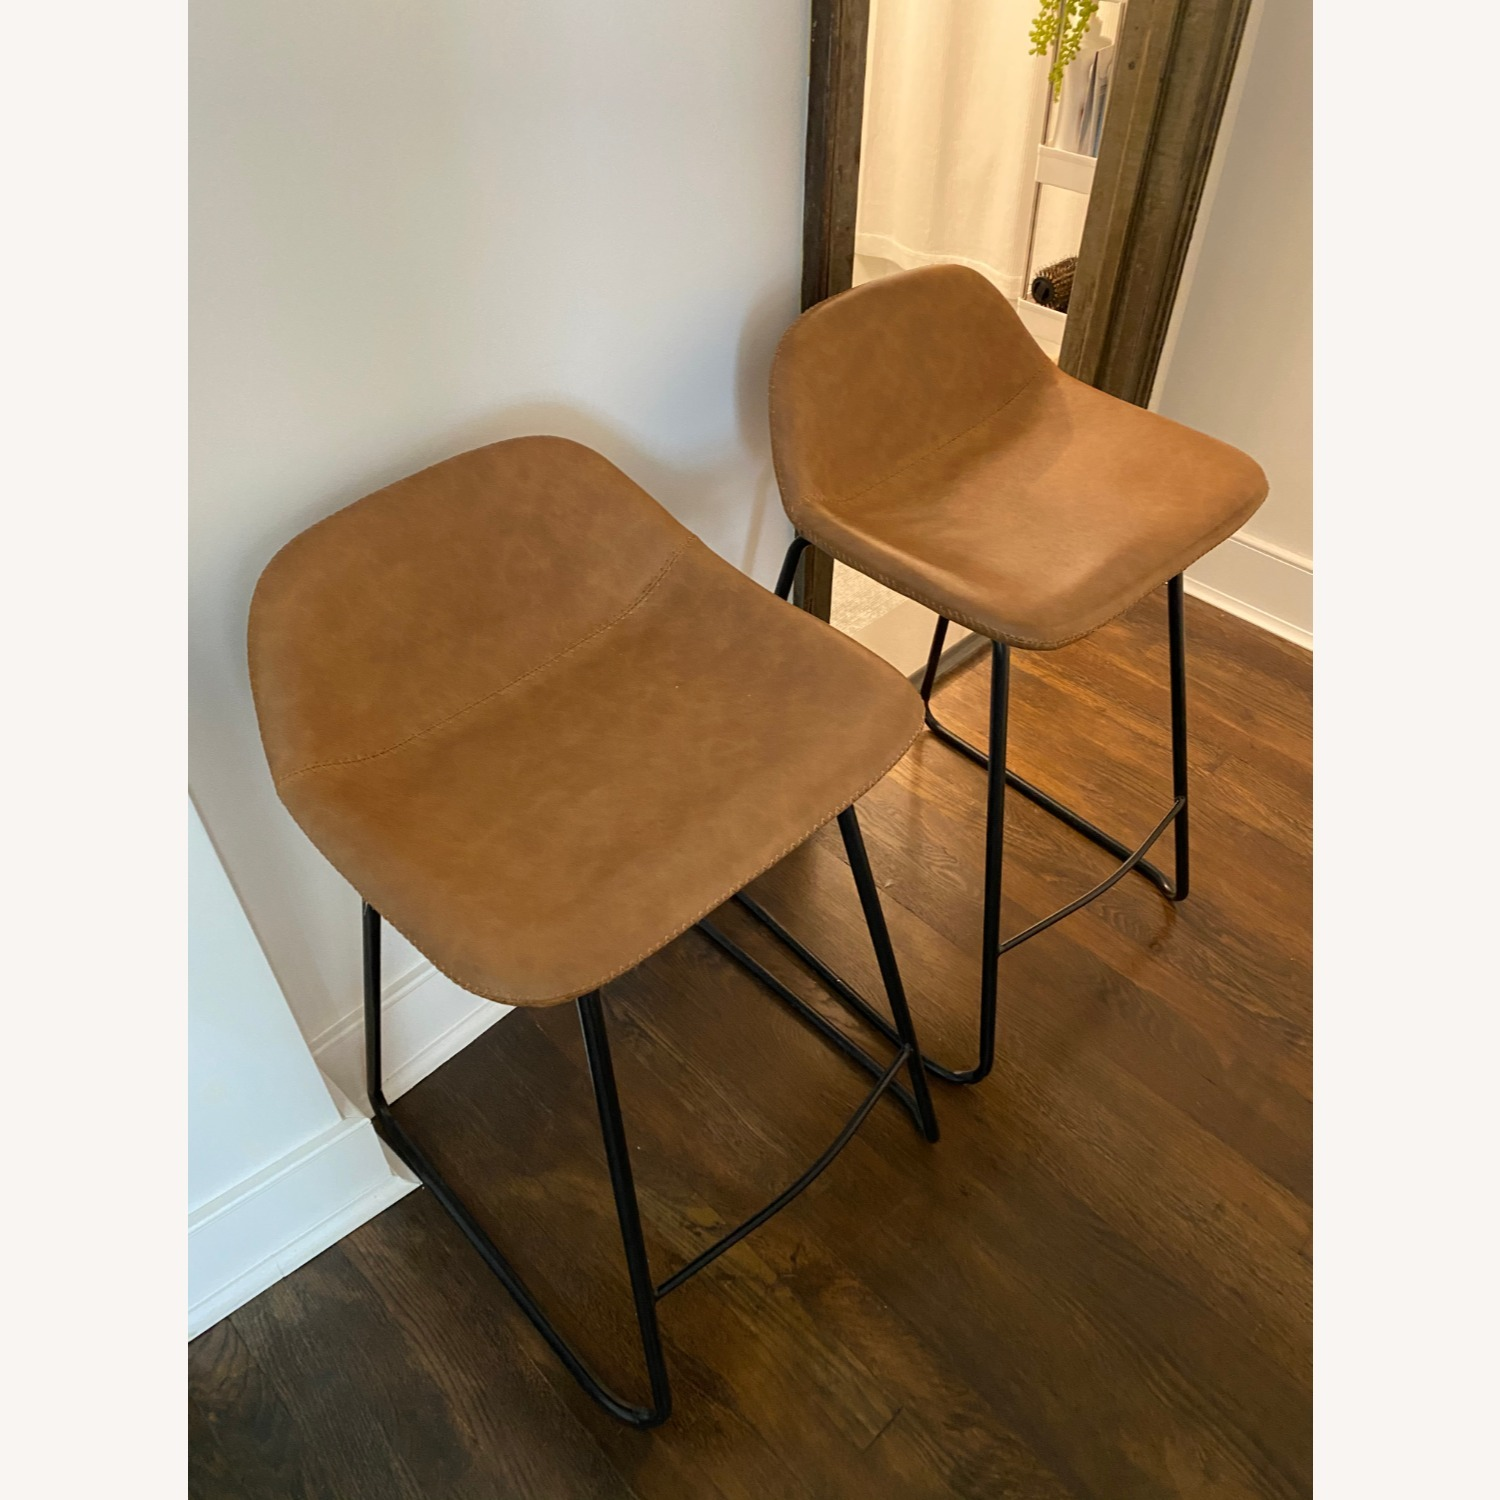 Wayfair Leather Bar Stools (2) Counter Height - image-2